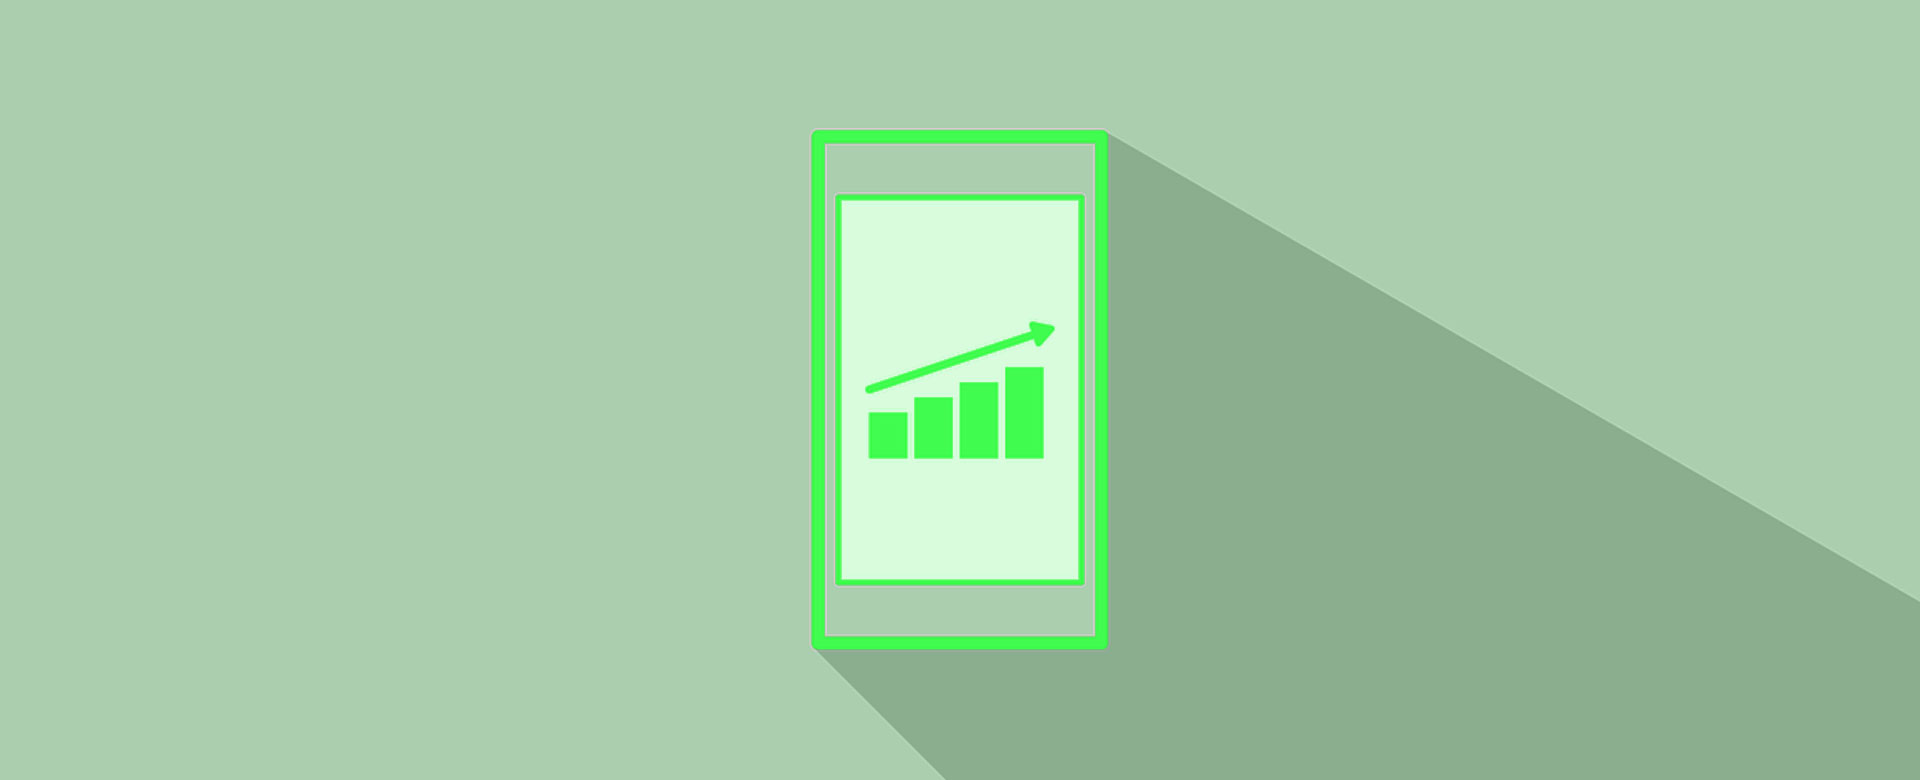 Business growth strategies for the iGaming industry